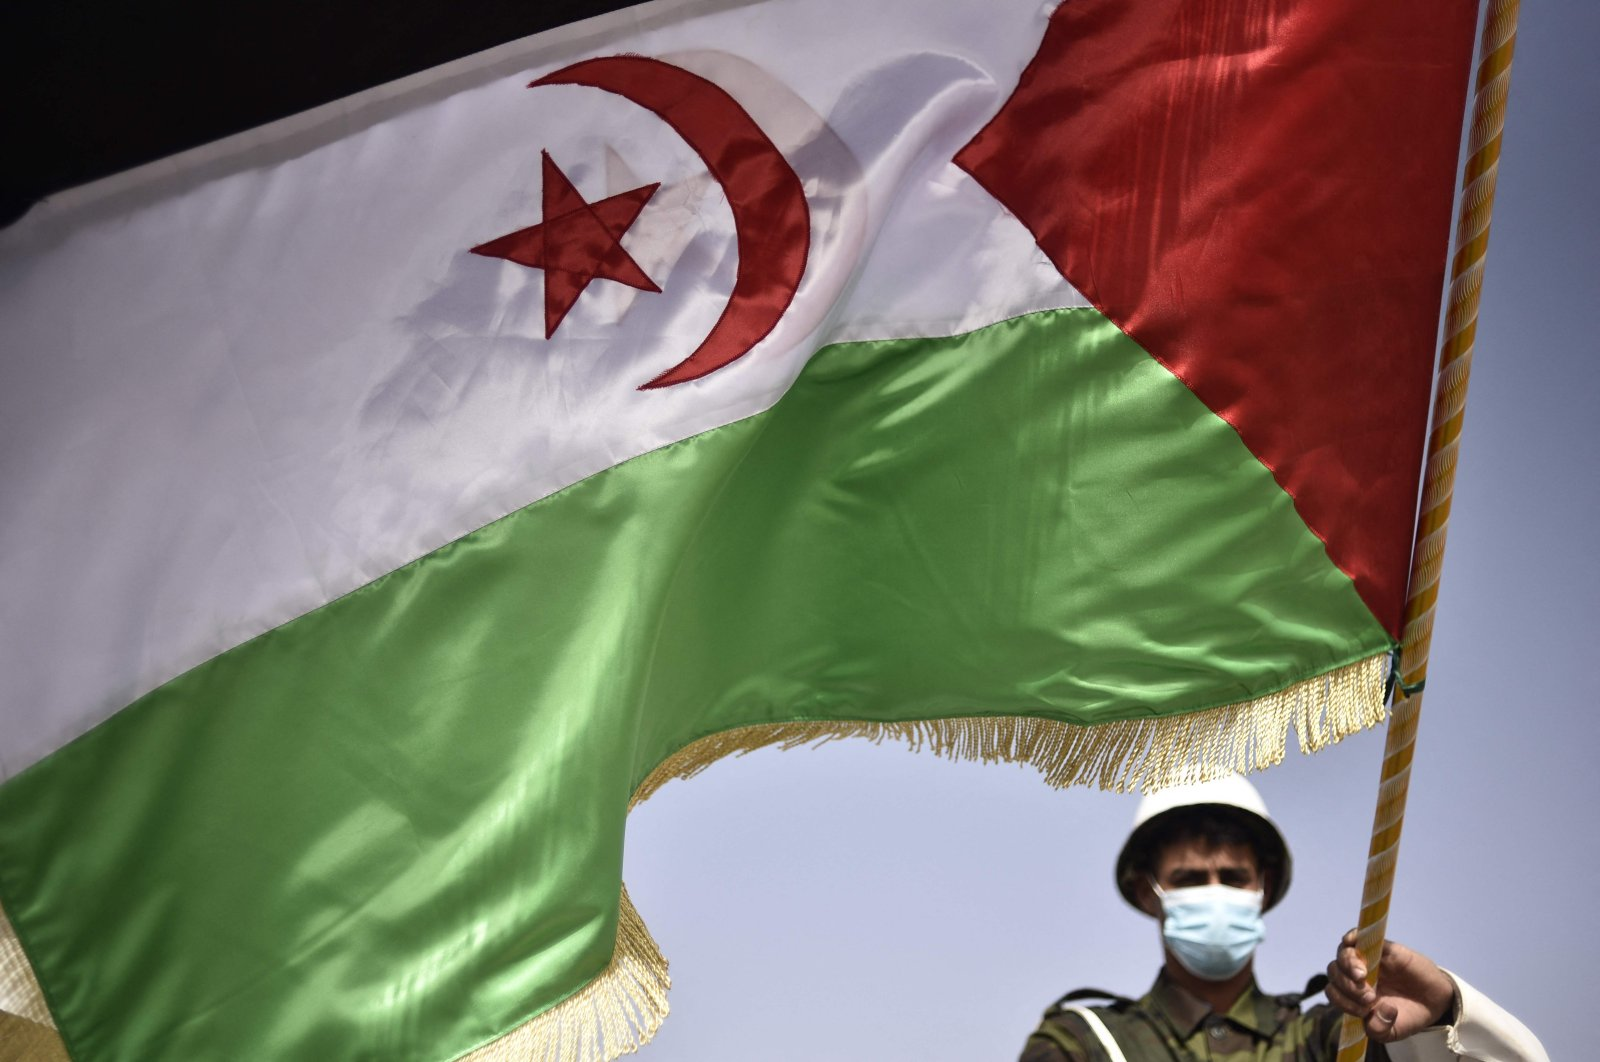 A Sahrawi soldier waves the Sahrawi flag during a parade marking the 45th anniversary of the declaration of the self-declared Sahrawi Arab Democratic Republic (SDAR), at a refugee camp on the outskirts of Tindouf, Algeria, on Feb. 27, 2021. (AFP Photo)